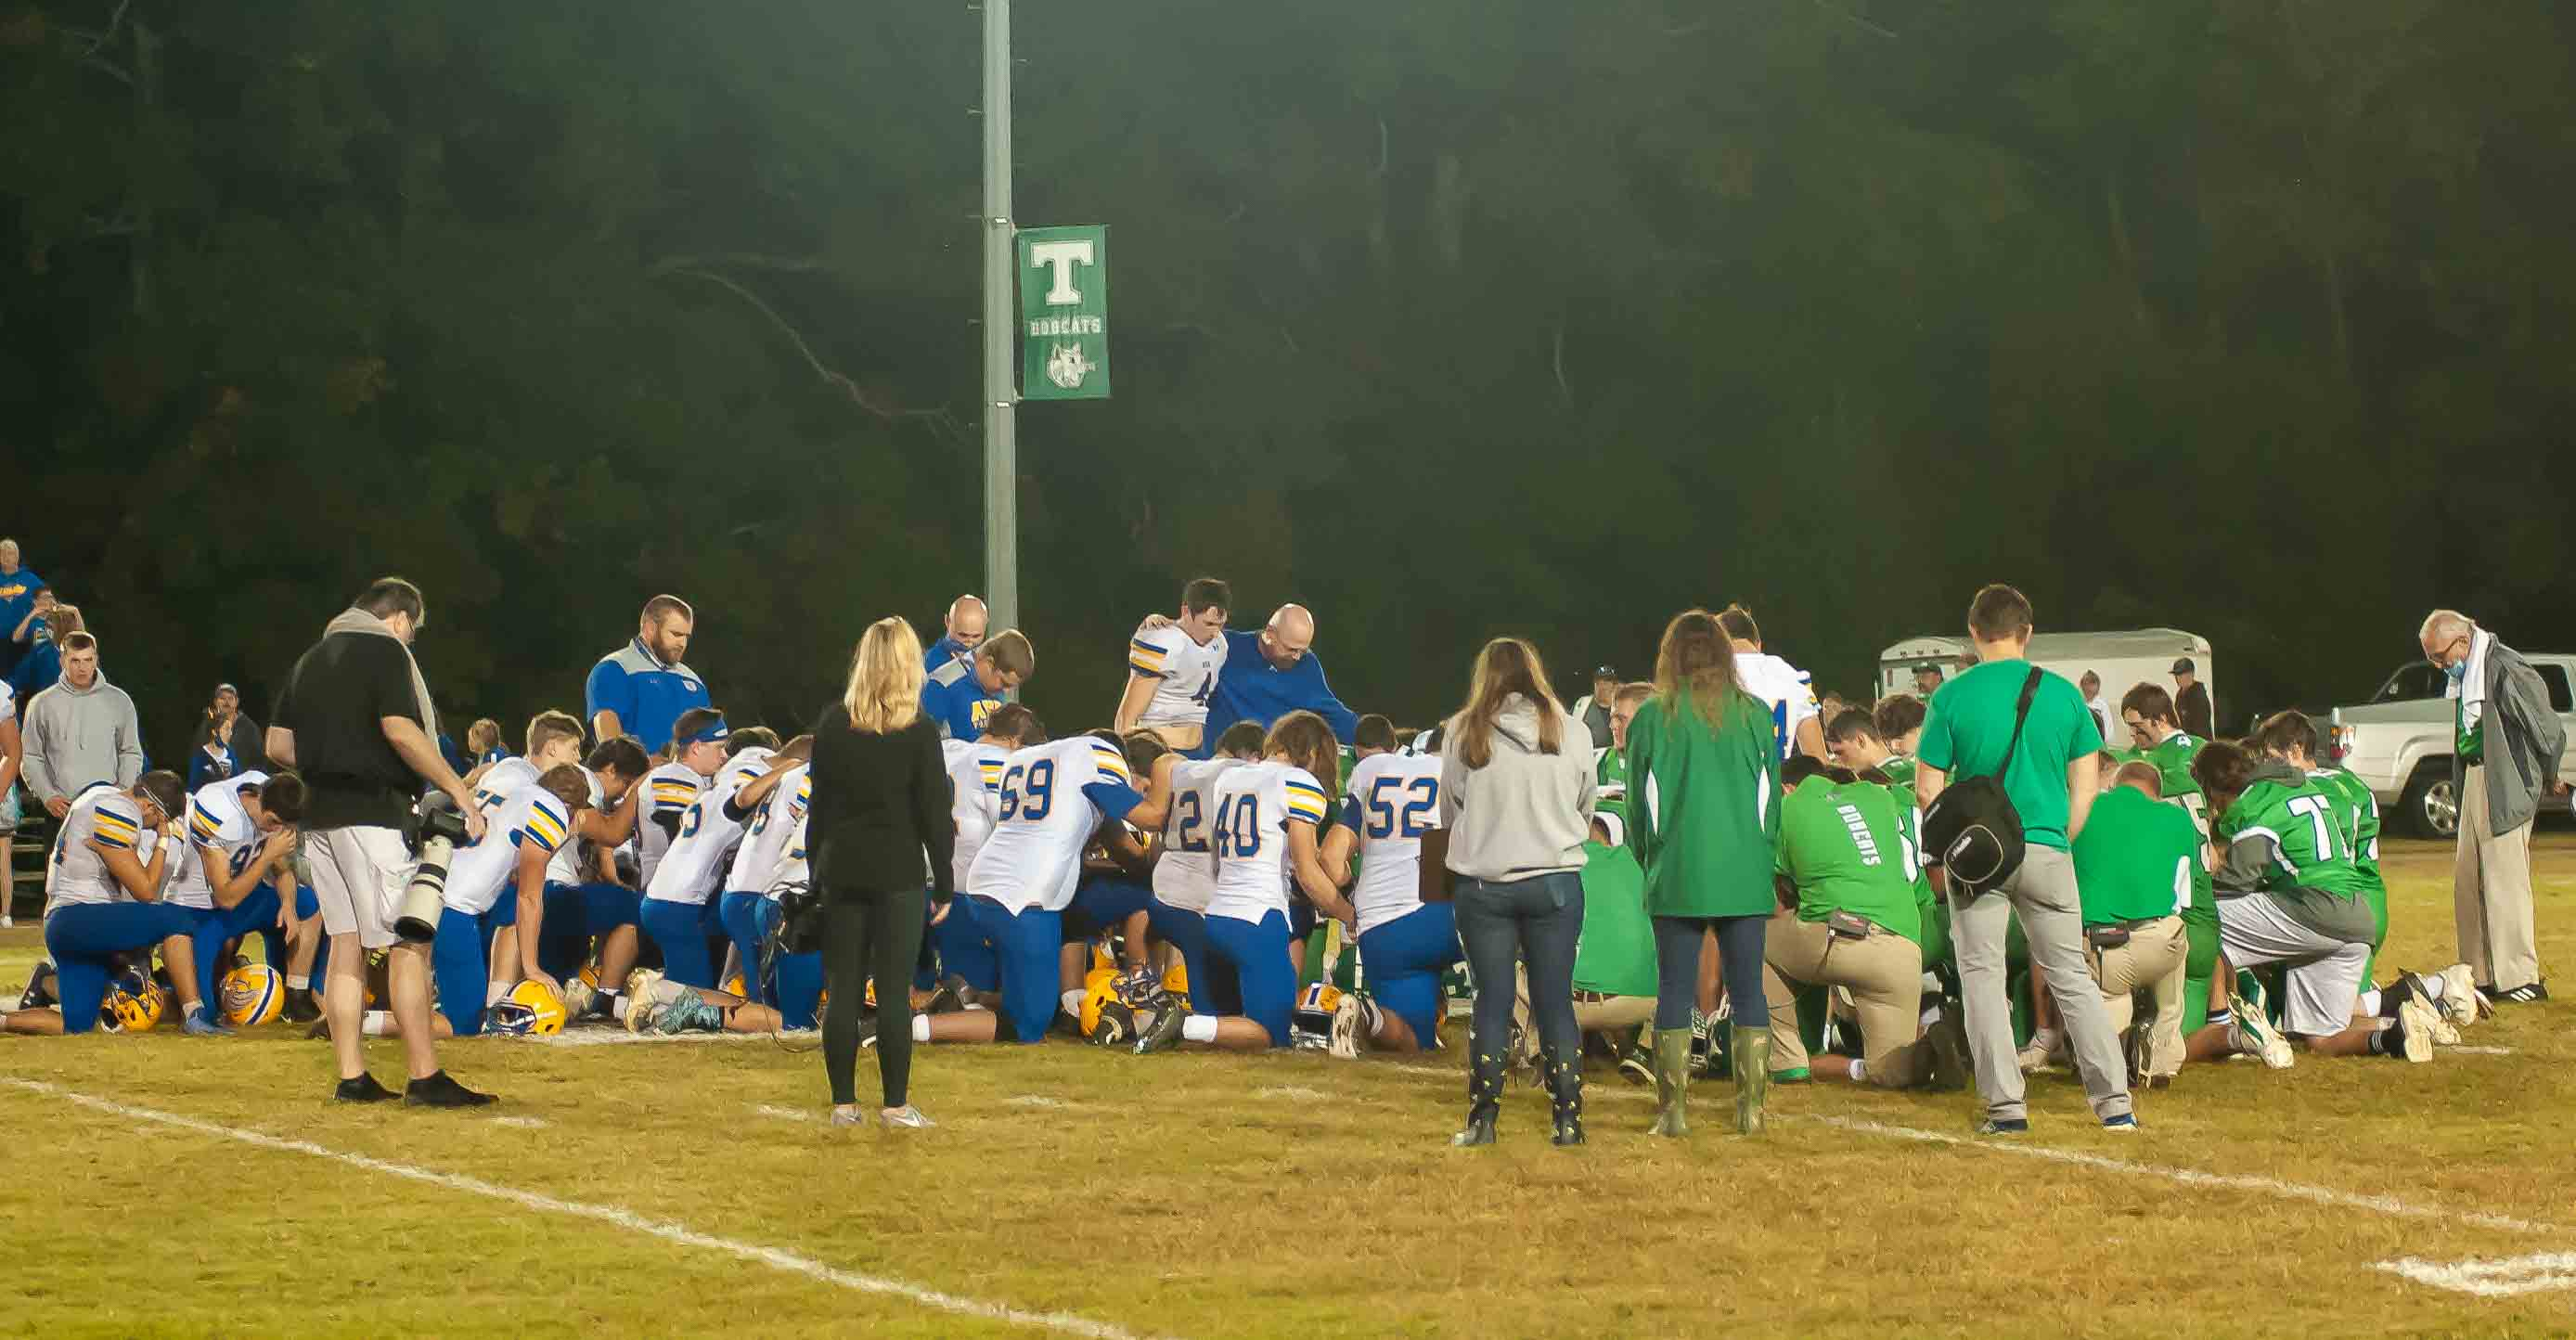 THAYER, MO - OCTOBER 9: Thayer Bobcats and Ava Bears coaching staff and players pray together after the game during the high school football game between the Ava Bears and the Thayer Bobcats on October 9, 2020, at the Thayer High School football field in Thayer, MO. (Photo by Curtis Thomas/AltonMo.com)